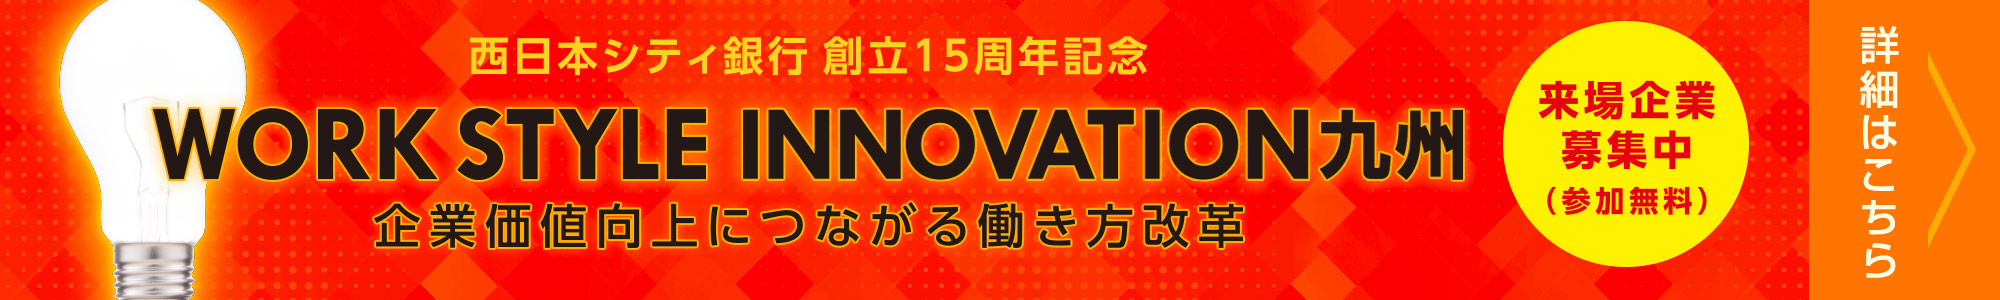 WORK STYLE INNOVATION九州